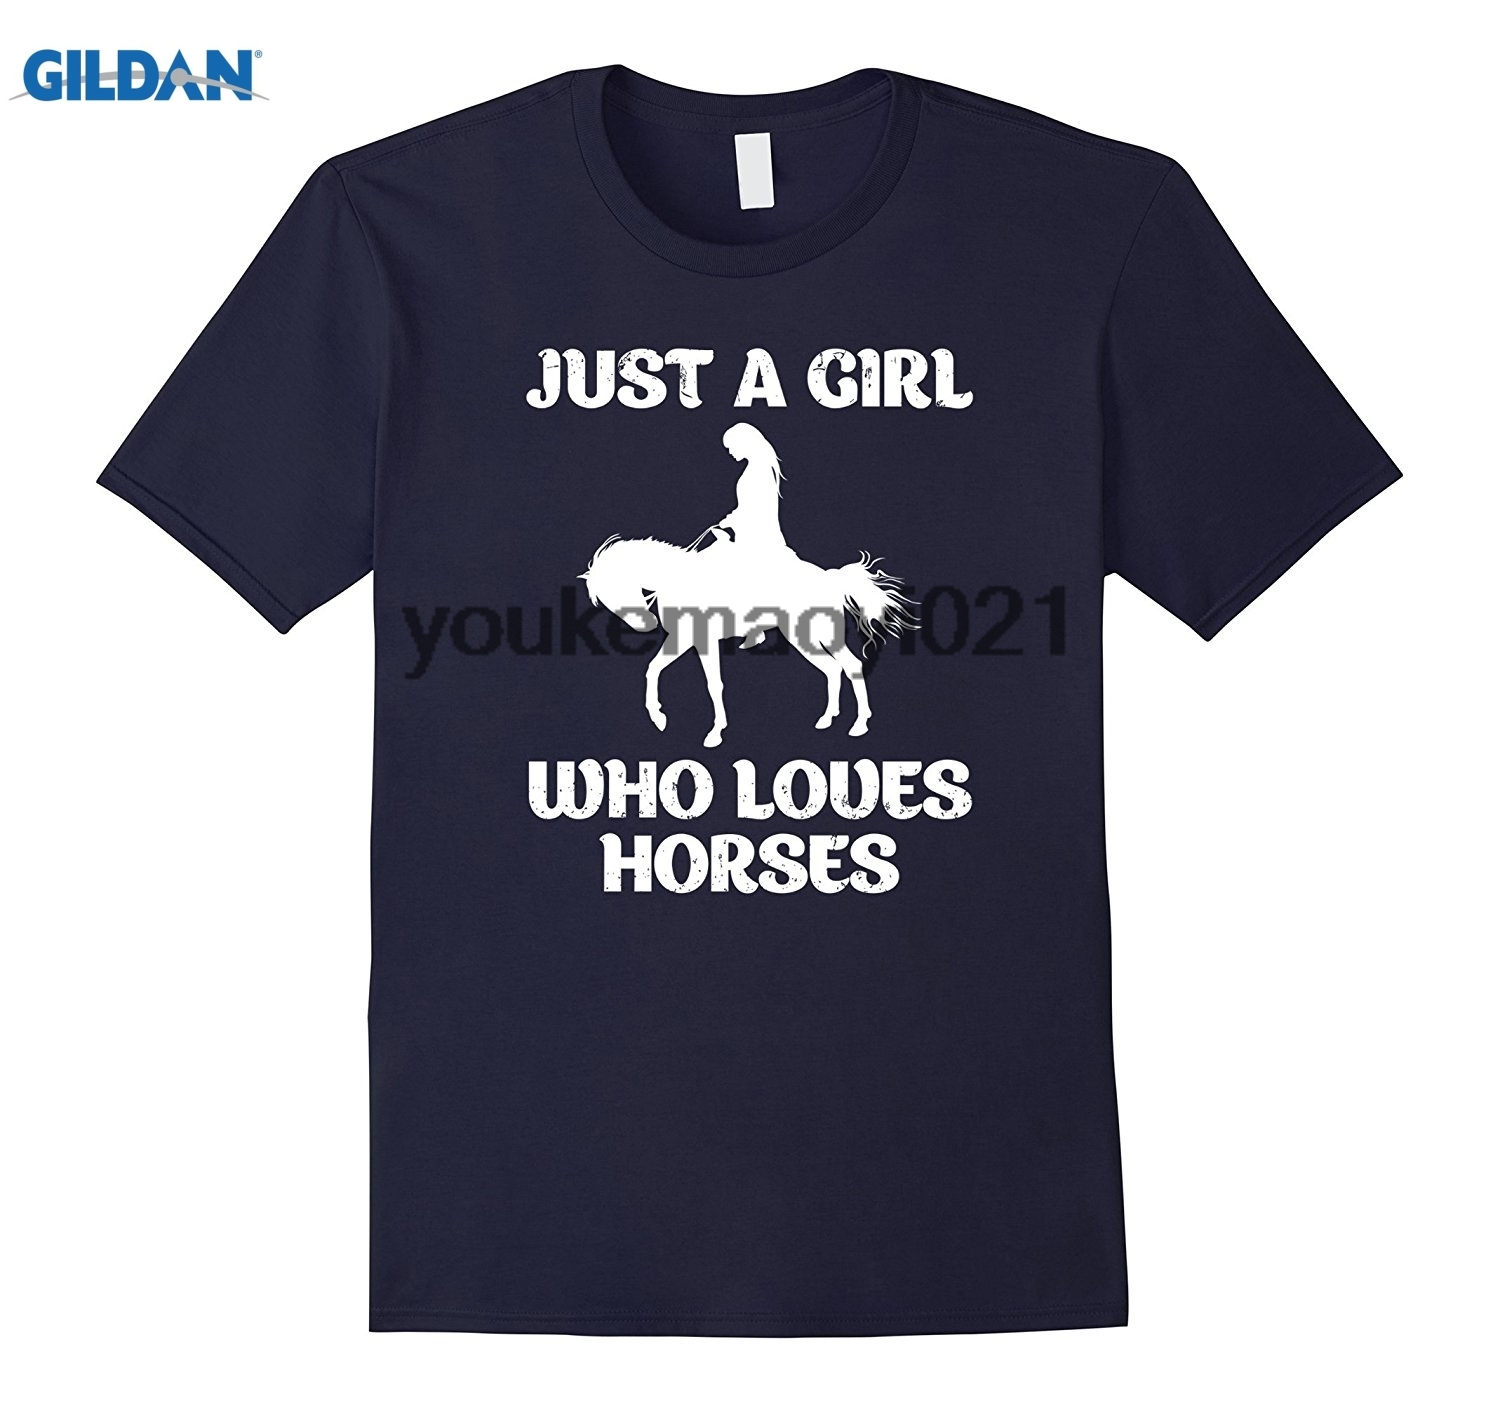 GILDAN Just A Girl Who Loves Horses Shirt Equestrian Riding T-Shirt ...